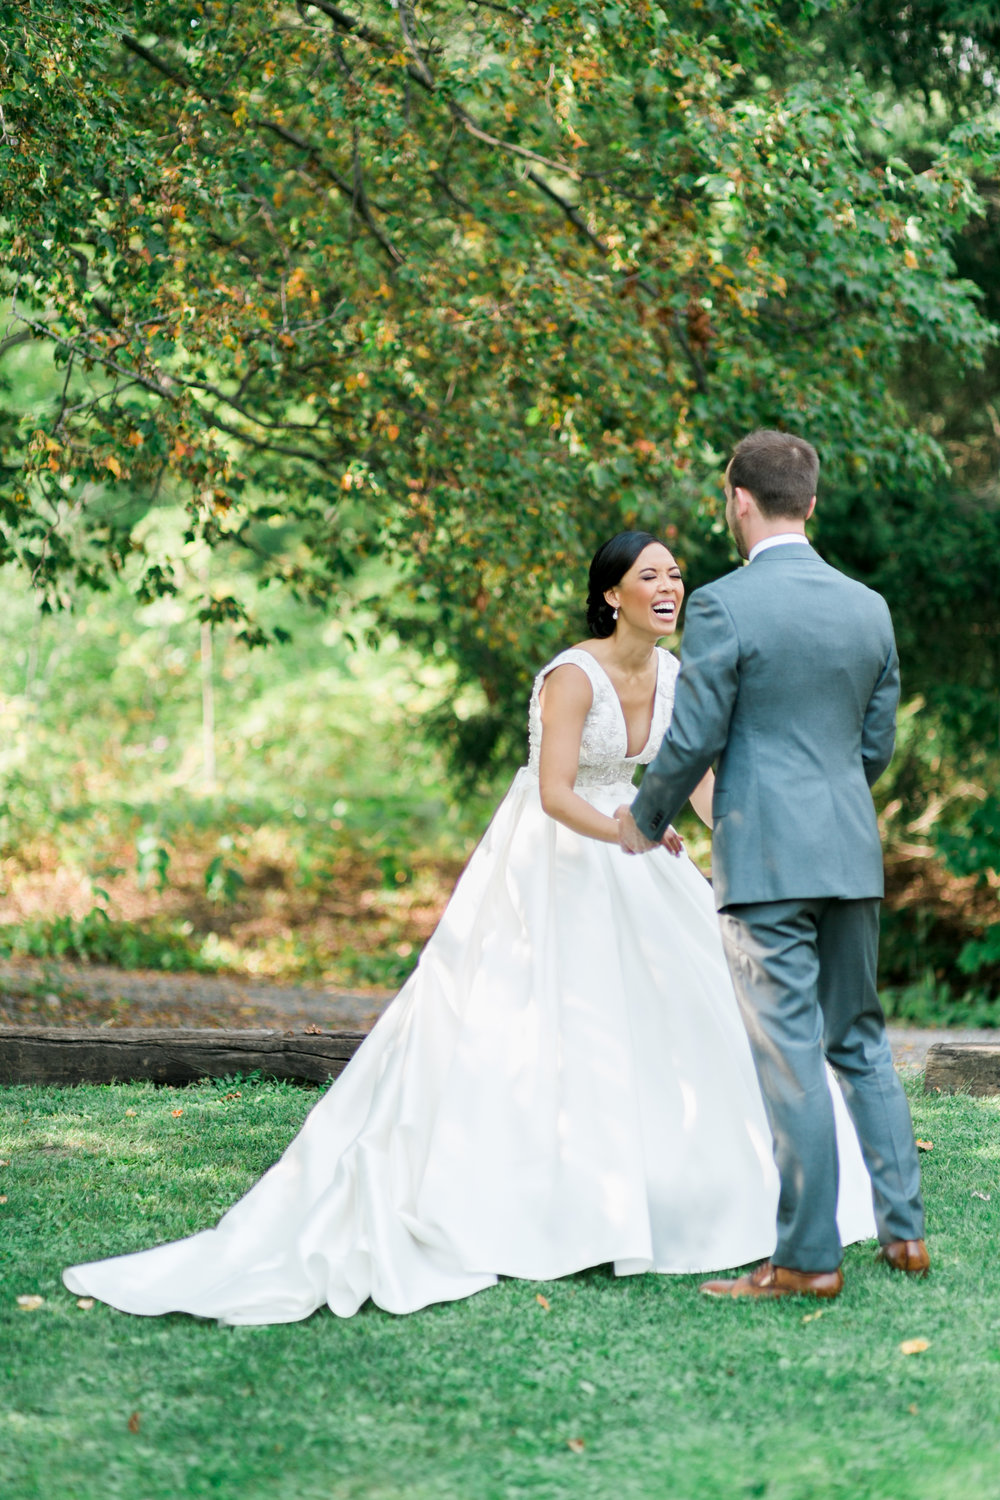 Alton Mills Wedding - First Look-12.jpg